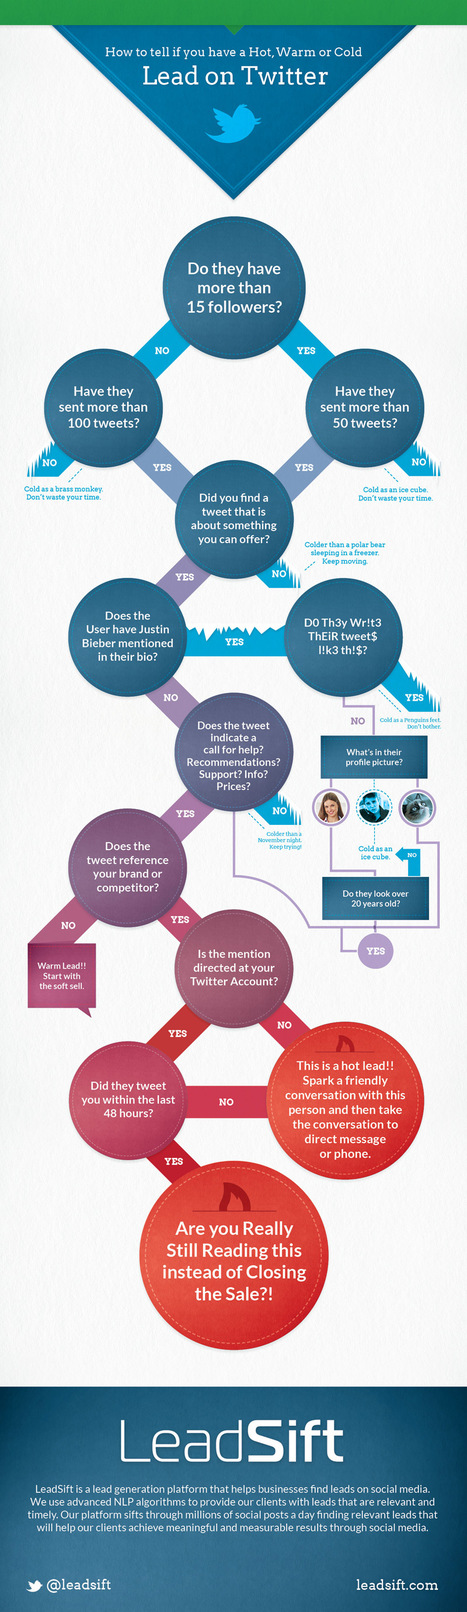 How to find leads on Twitter [infographic] | Virtual Options: Social Media for Business | Scoop.it